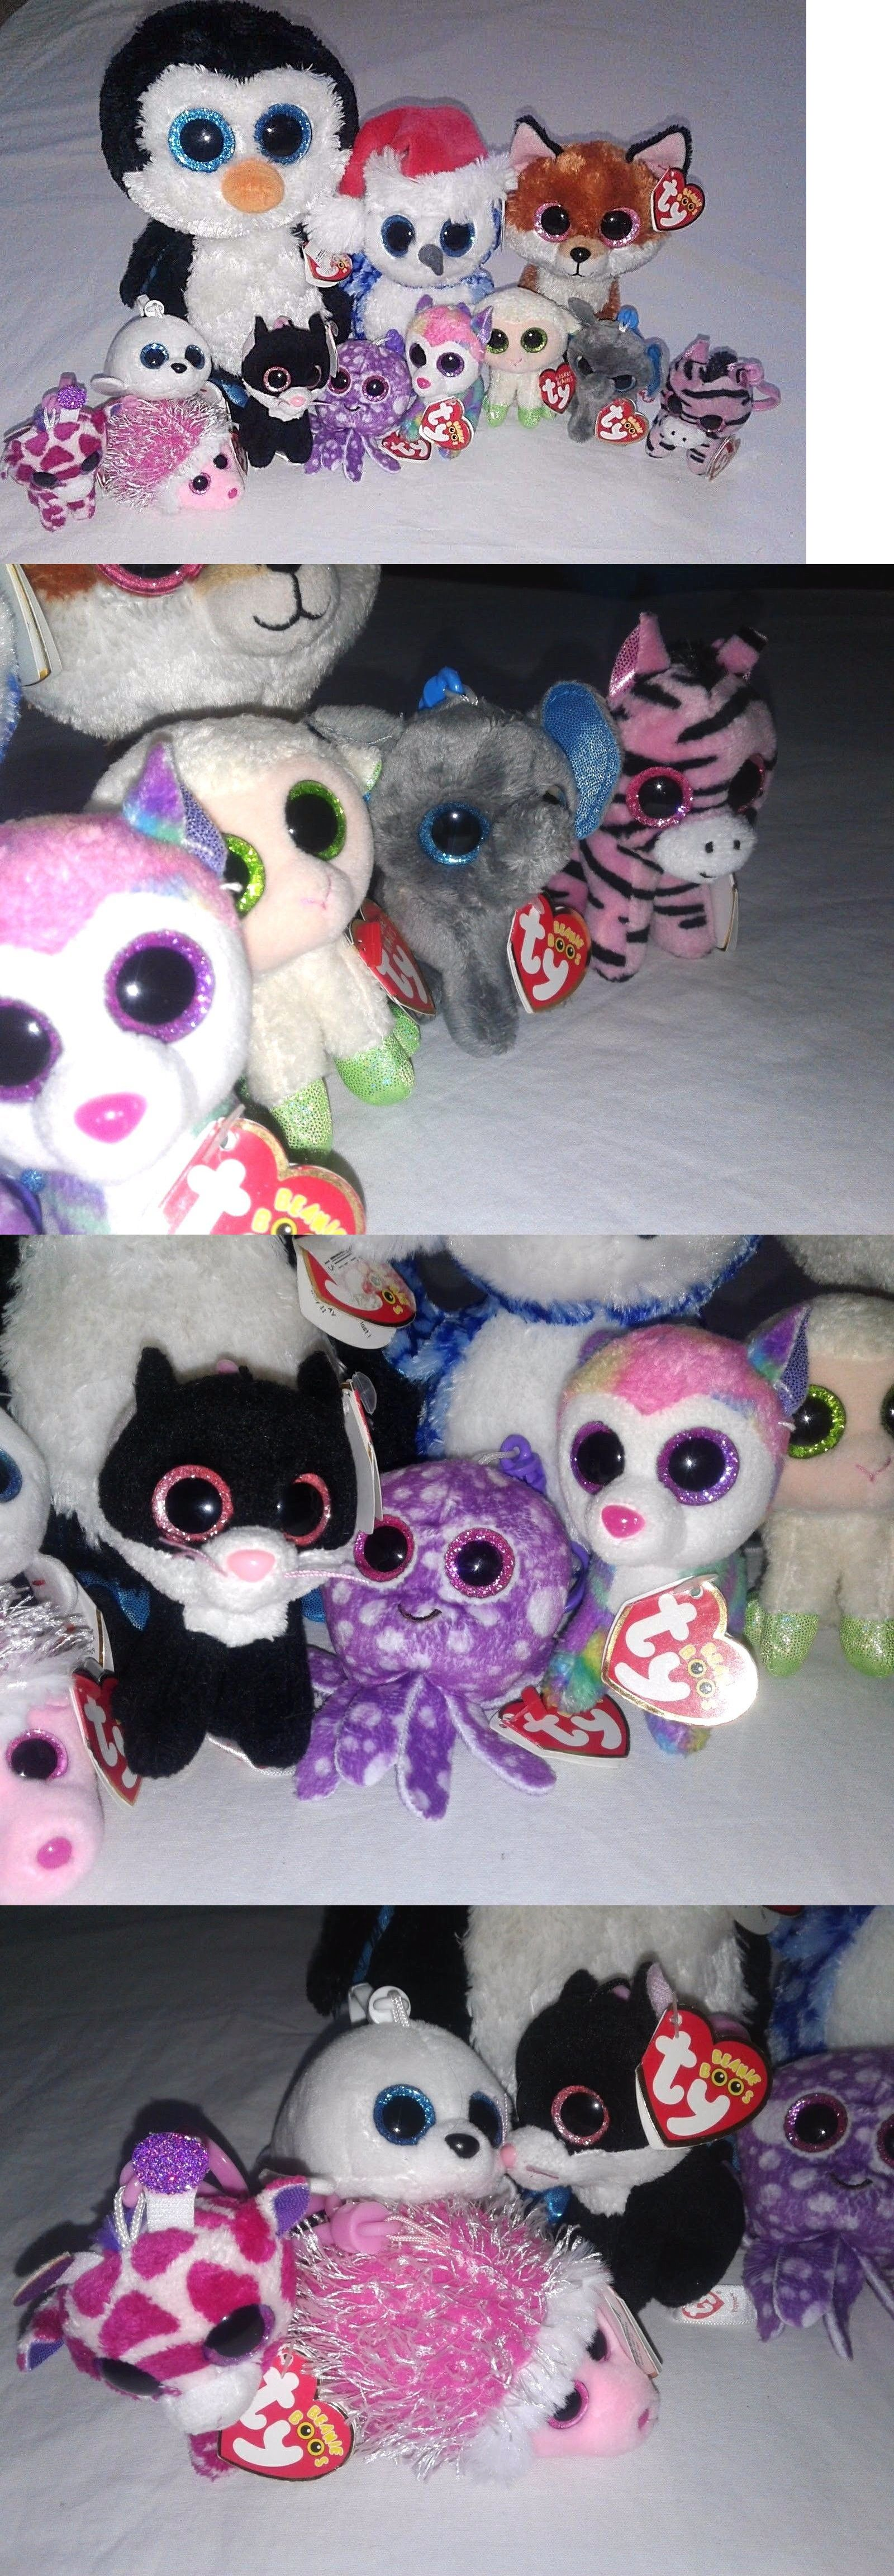 Other Ty Beanbag Plush 1037  Nwt Ty Beanie Boo Lot 12Pc Pepper And Peanut  Clips 7149420b90f4